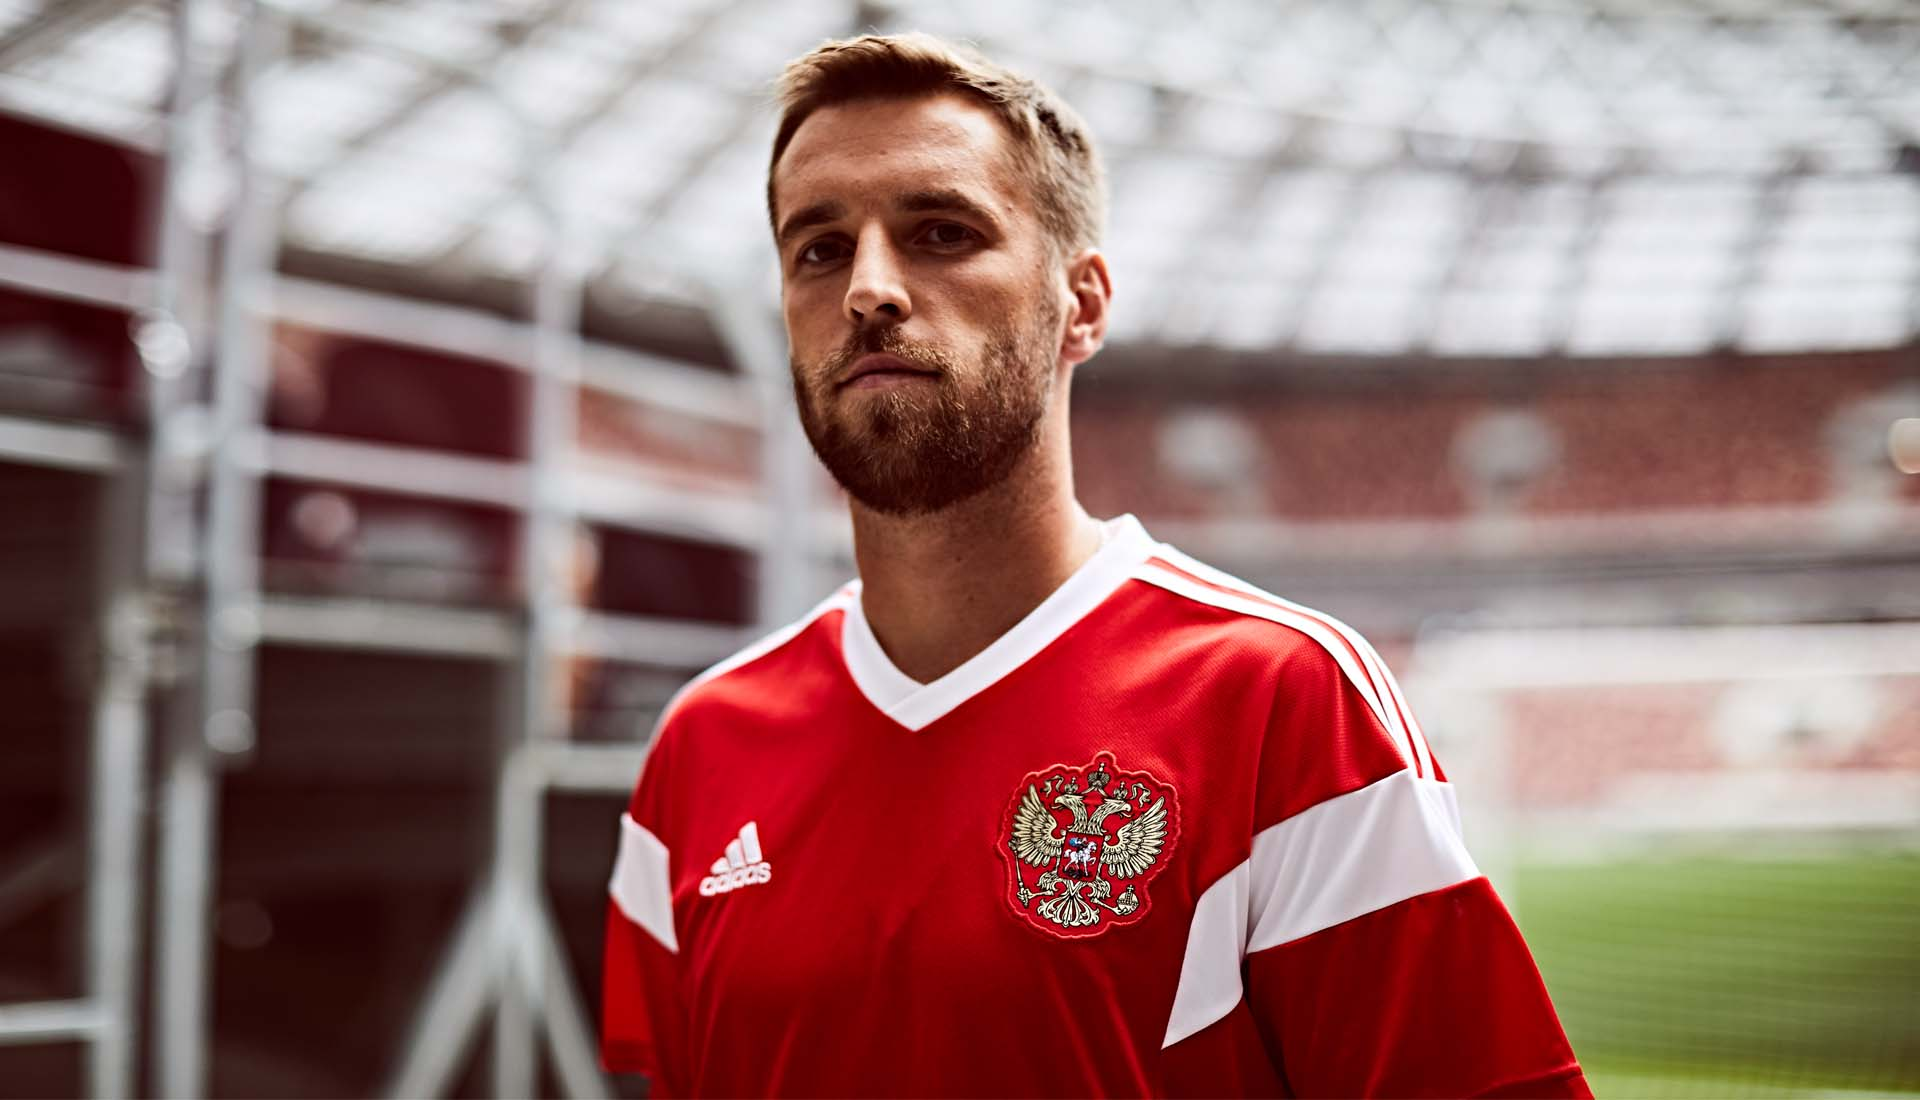 best loved 5255c f16a3 Russia 2018 World Cup adidas Home Shirt - SoccerBible